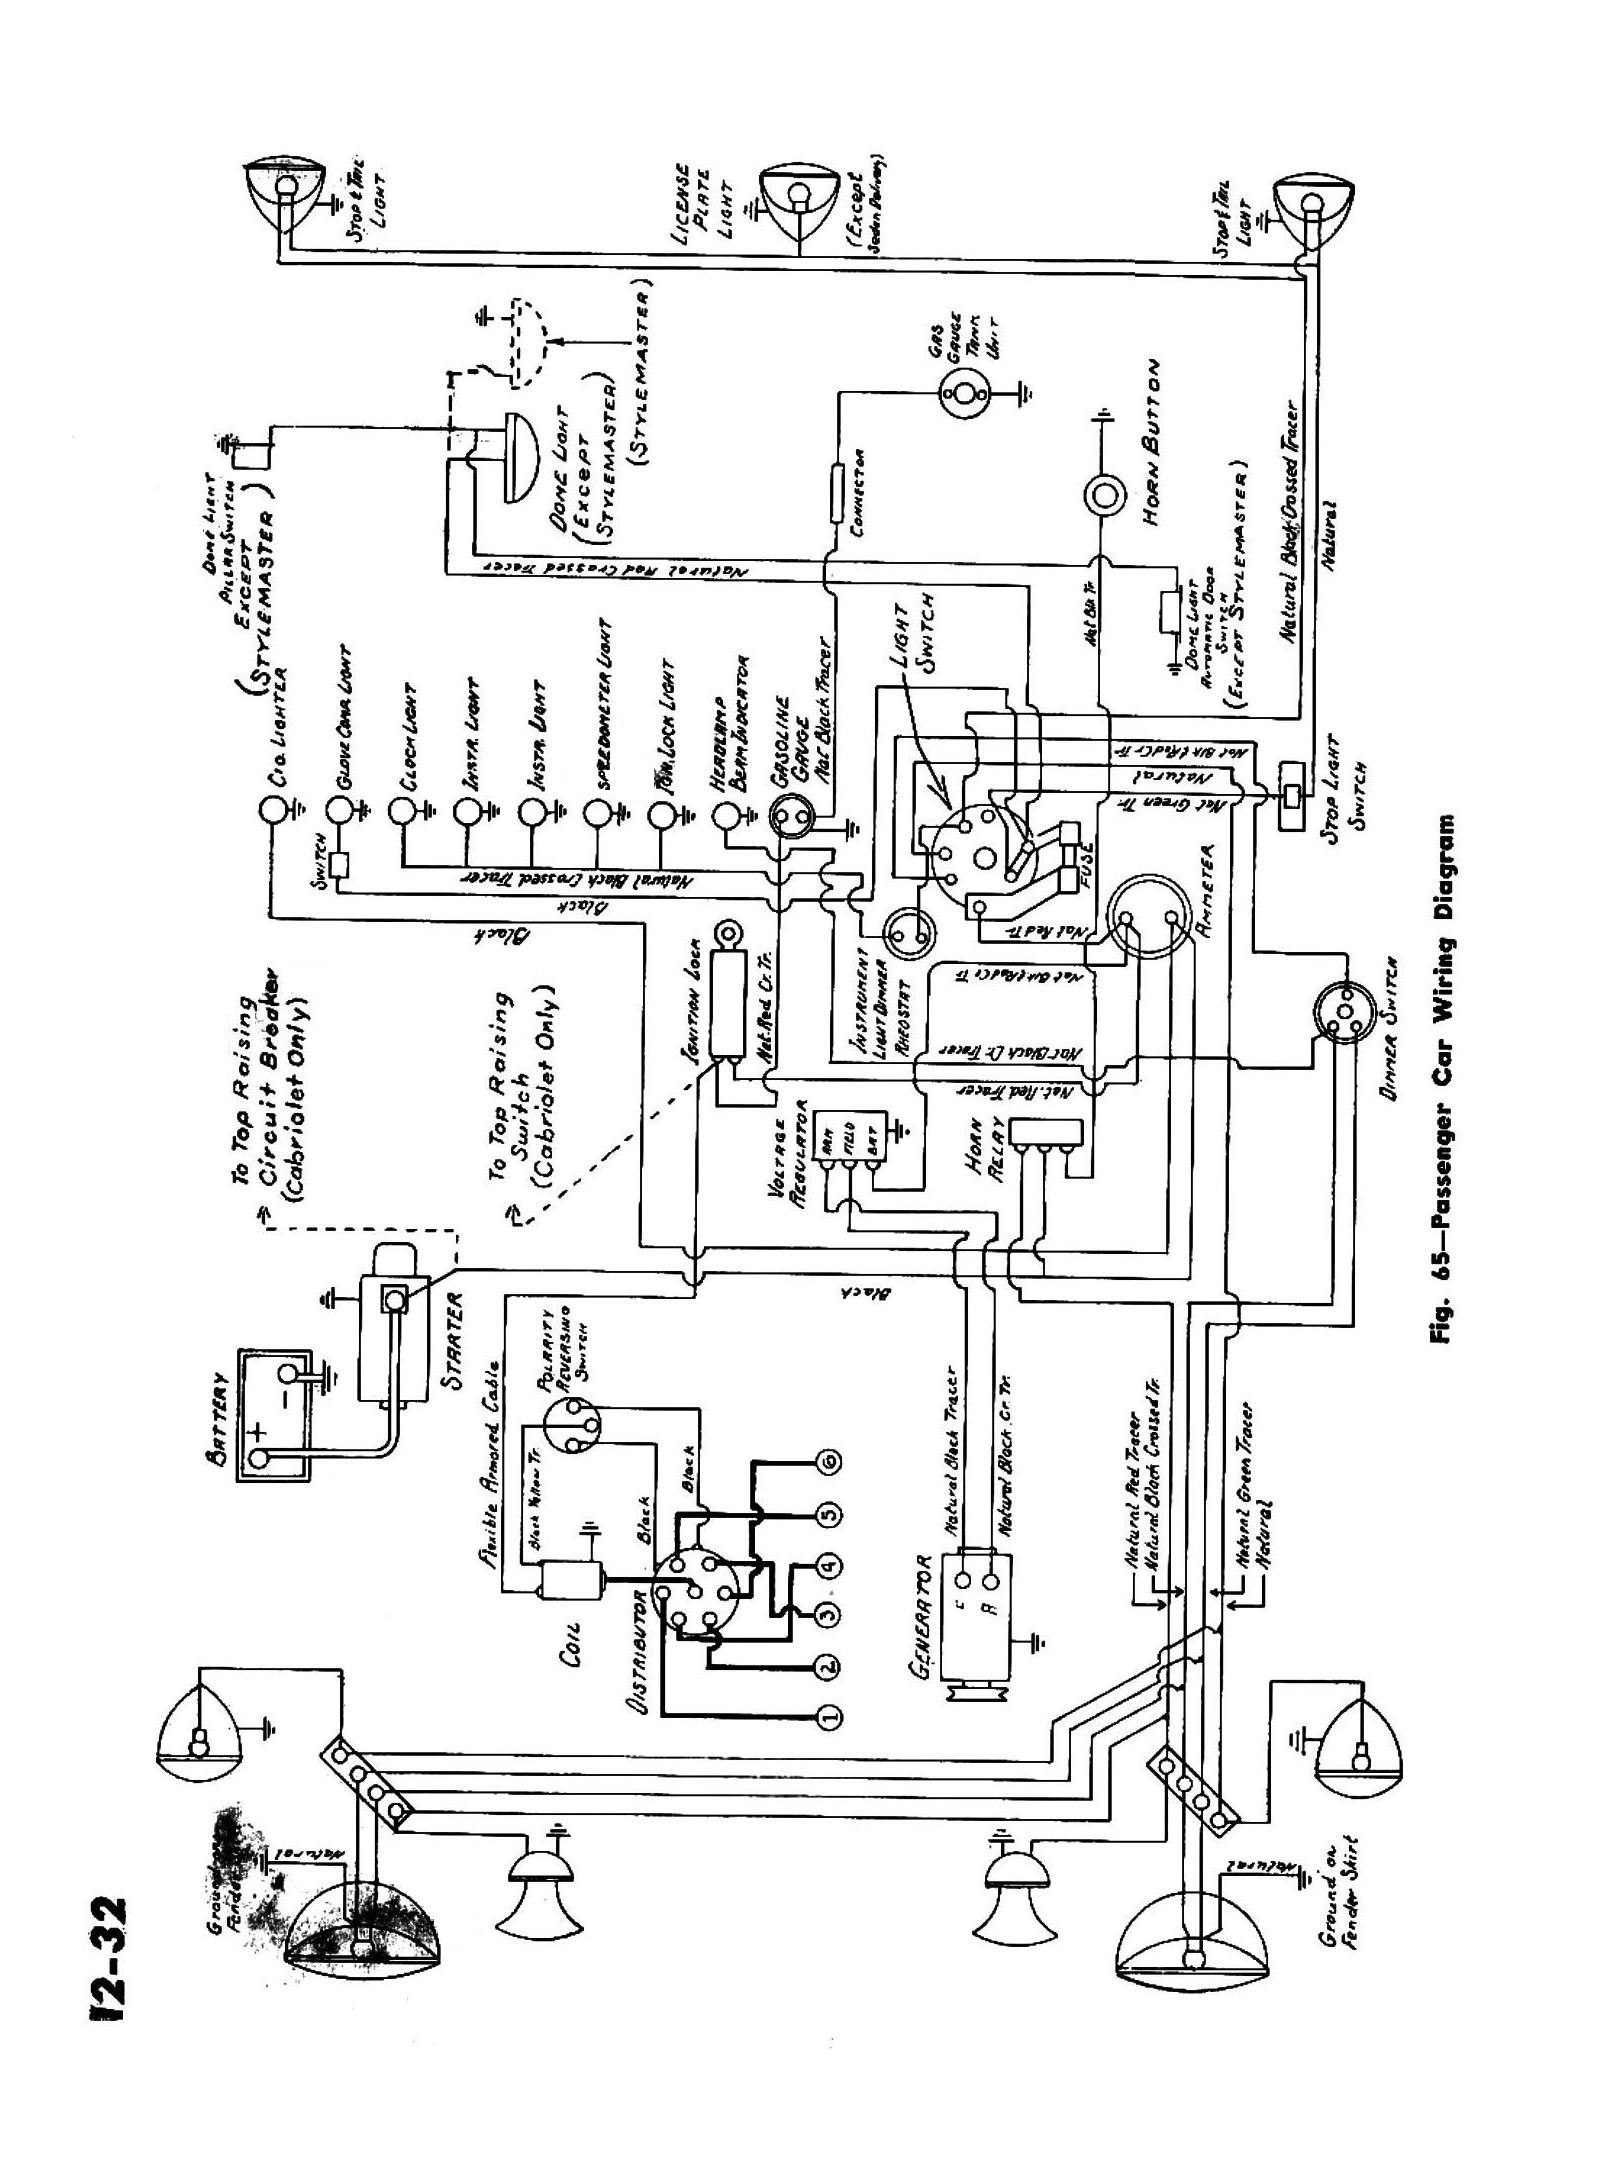 1947 Chevy Wire Diagram Archive Of Automotive Wiring Detached Garage Details Diagrams Rh Oldcarmanualproject Com